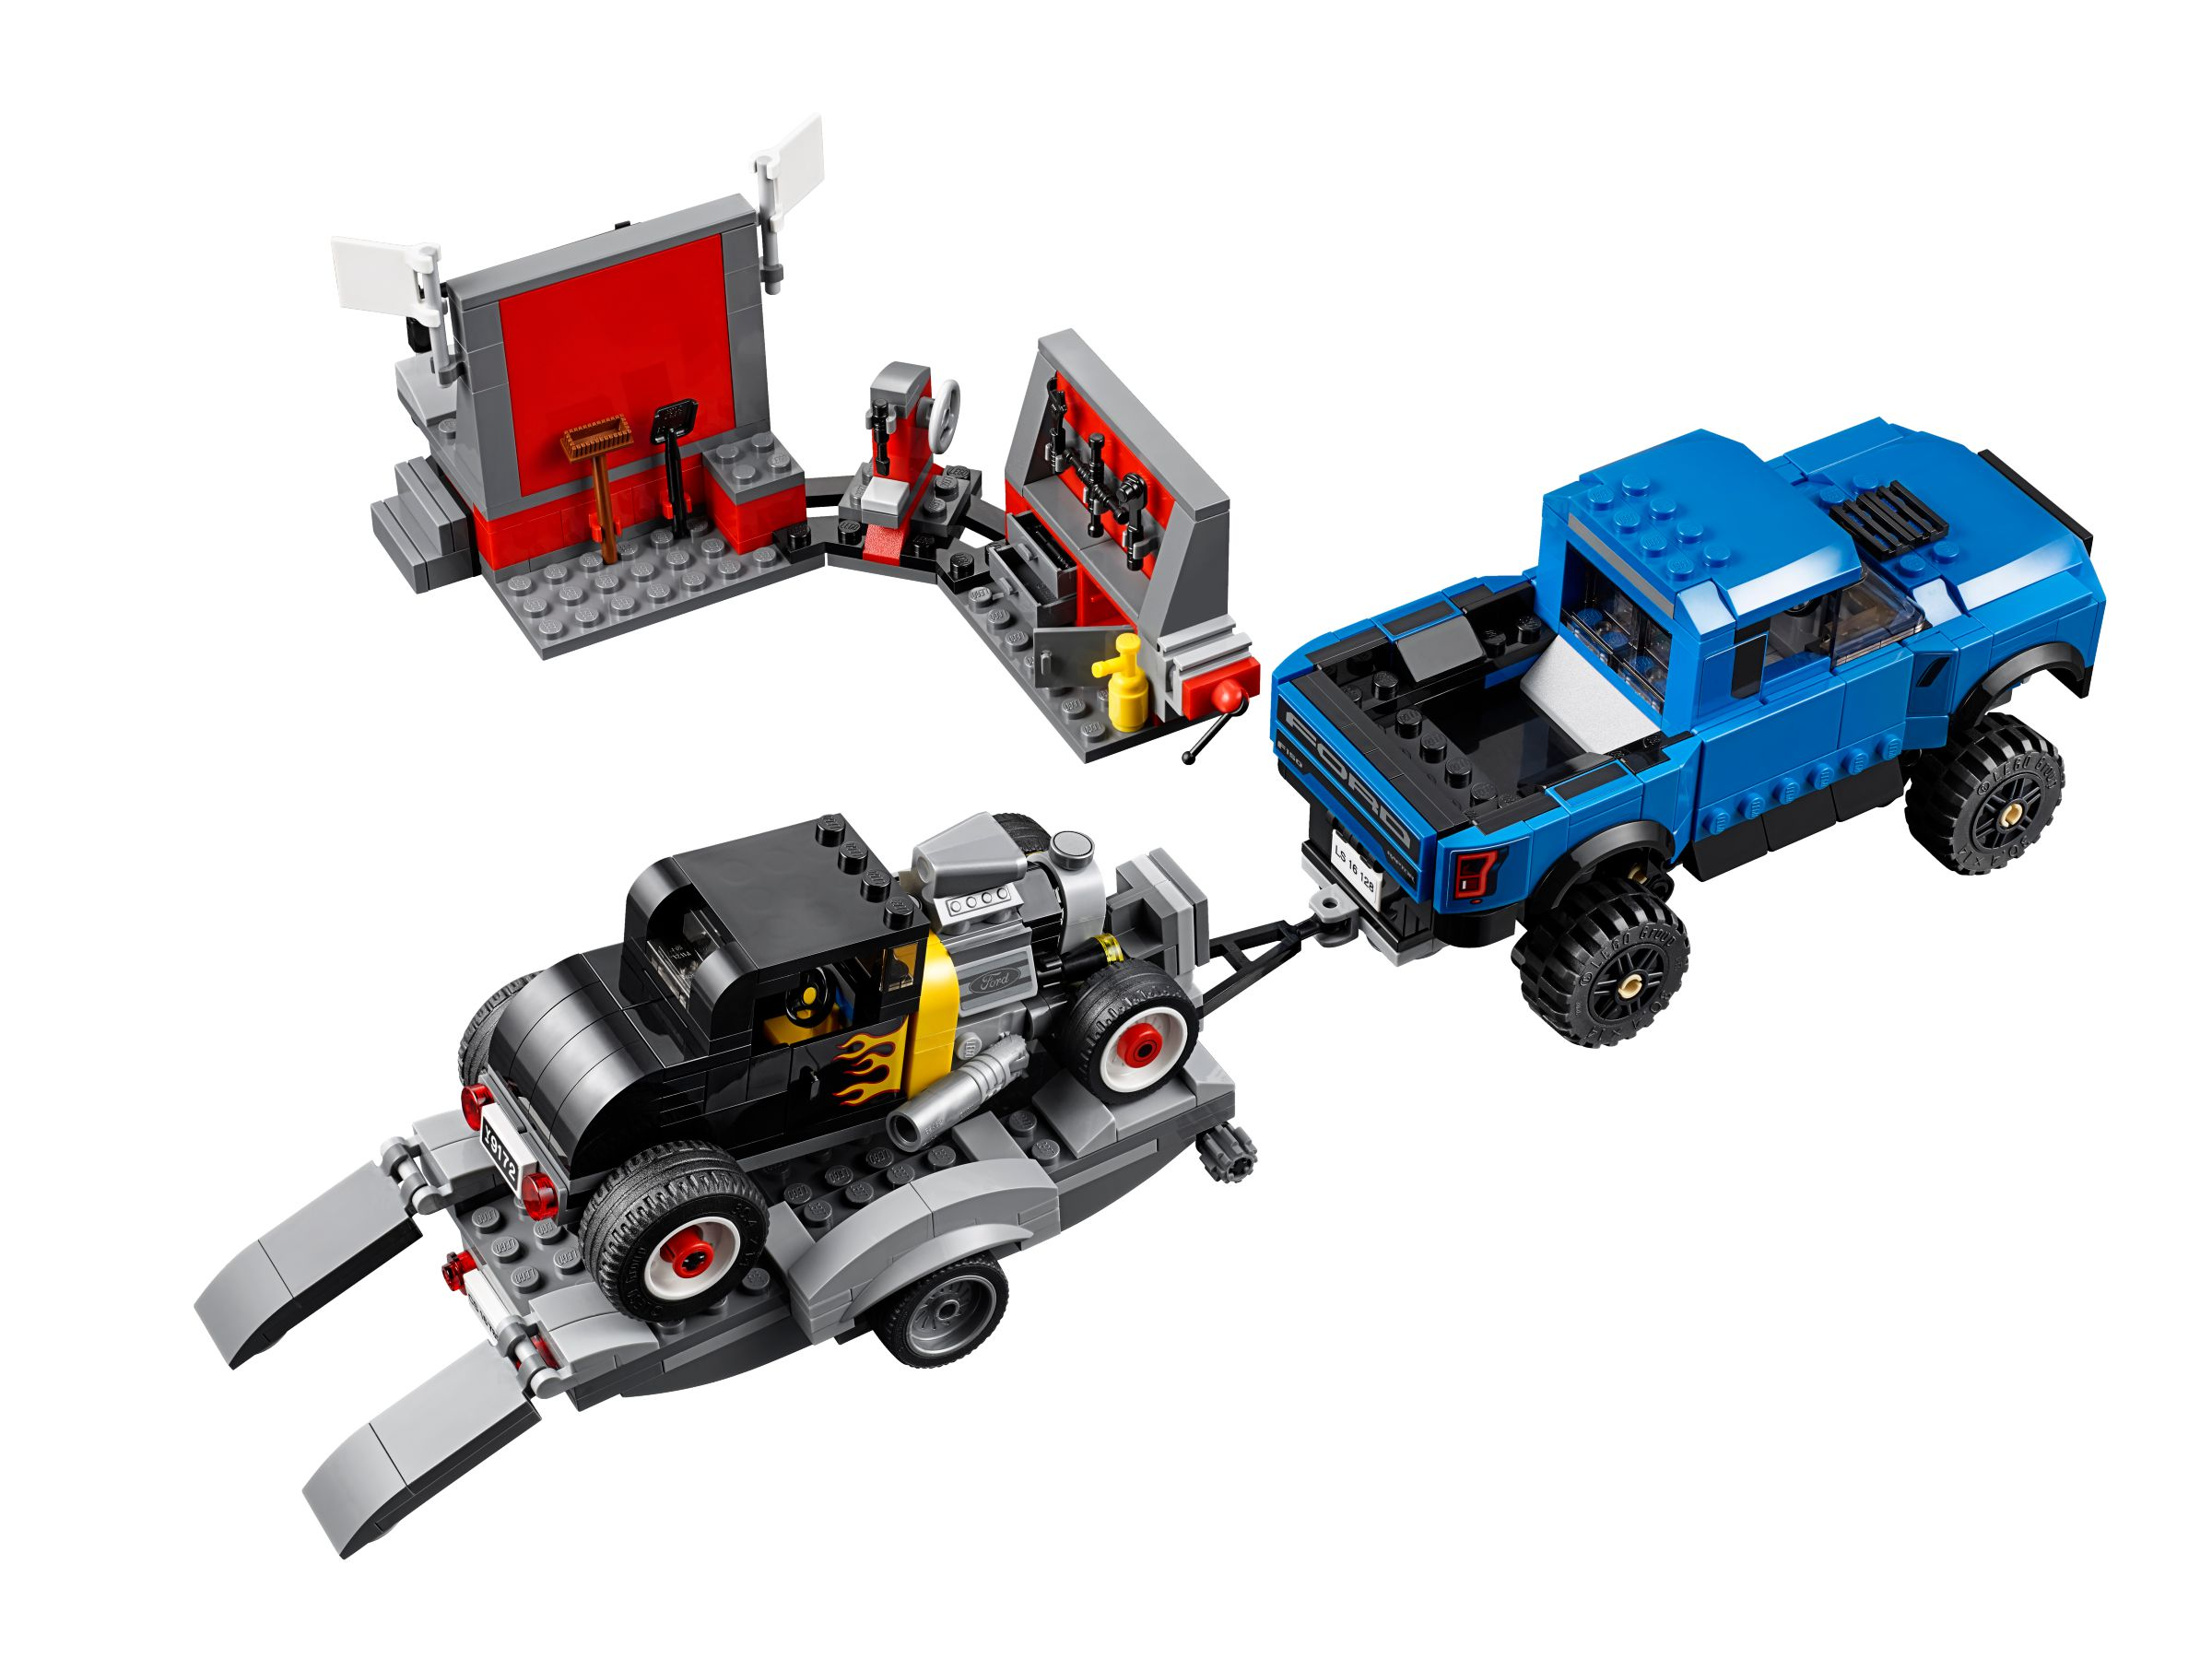 LEGO Speed Champions 75875 Ford F-150 Raptor & Ford Model A Hot Rod LEGO_75875_alt6.jpg